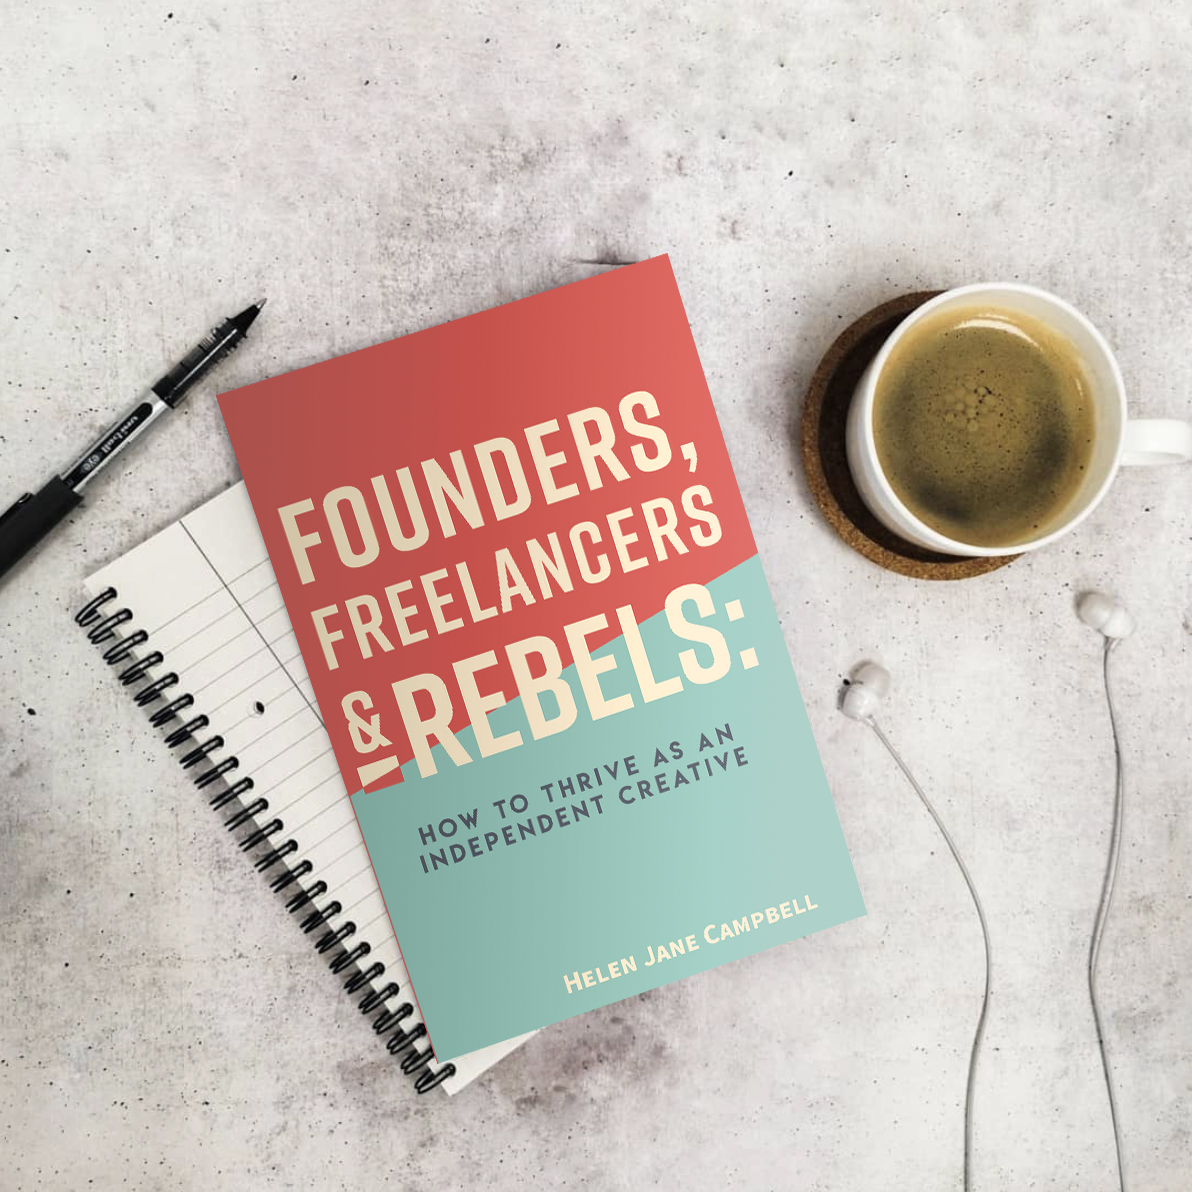 founders-freelancers-and-rebels